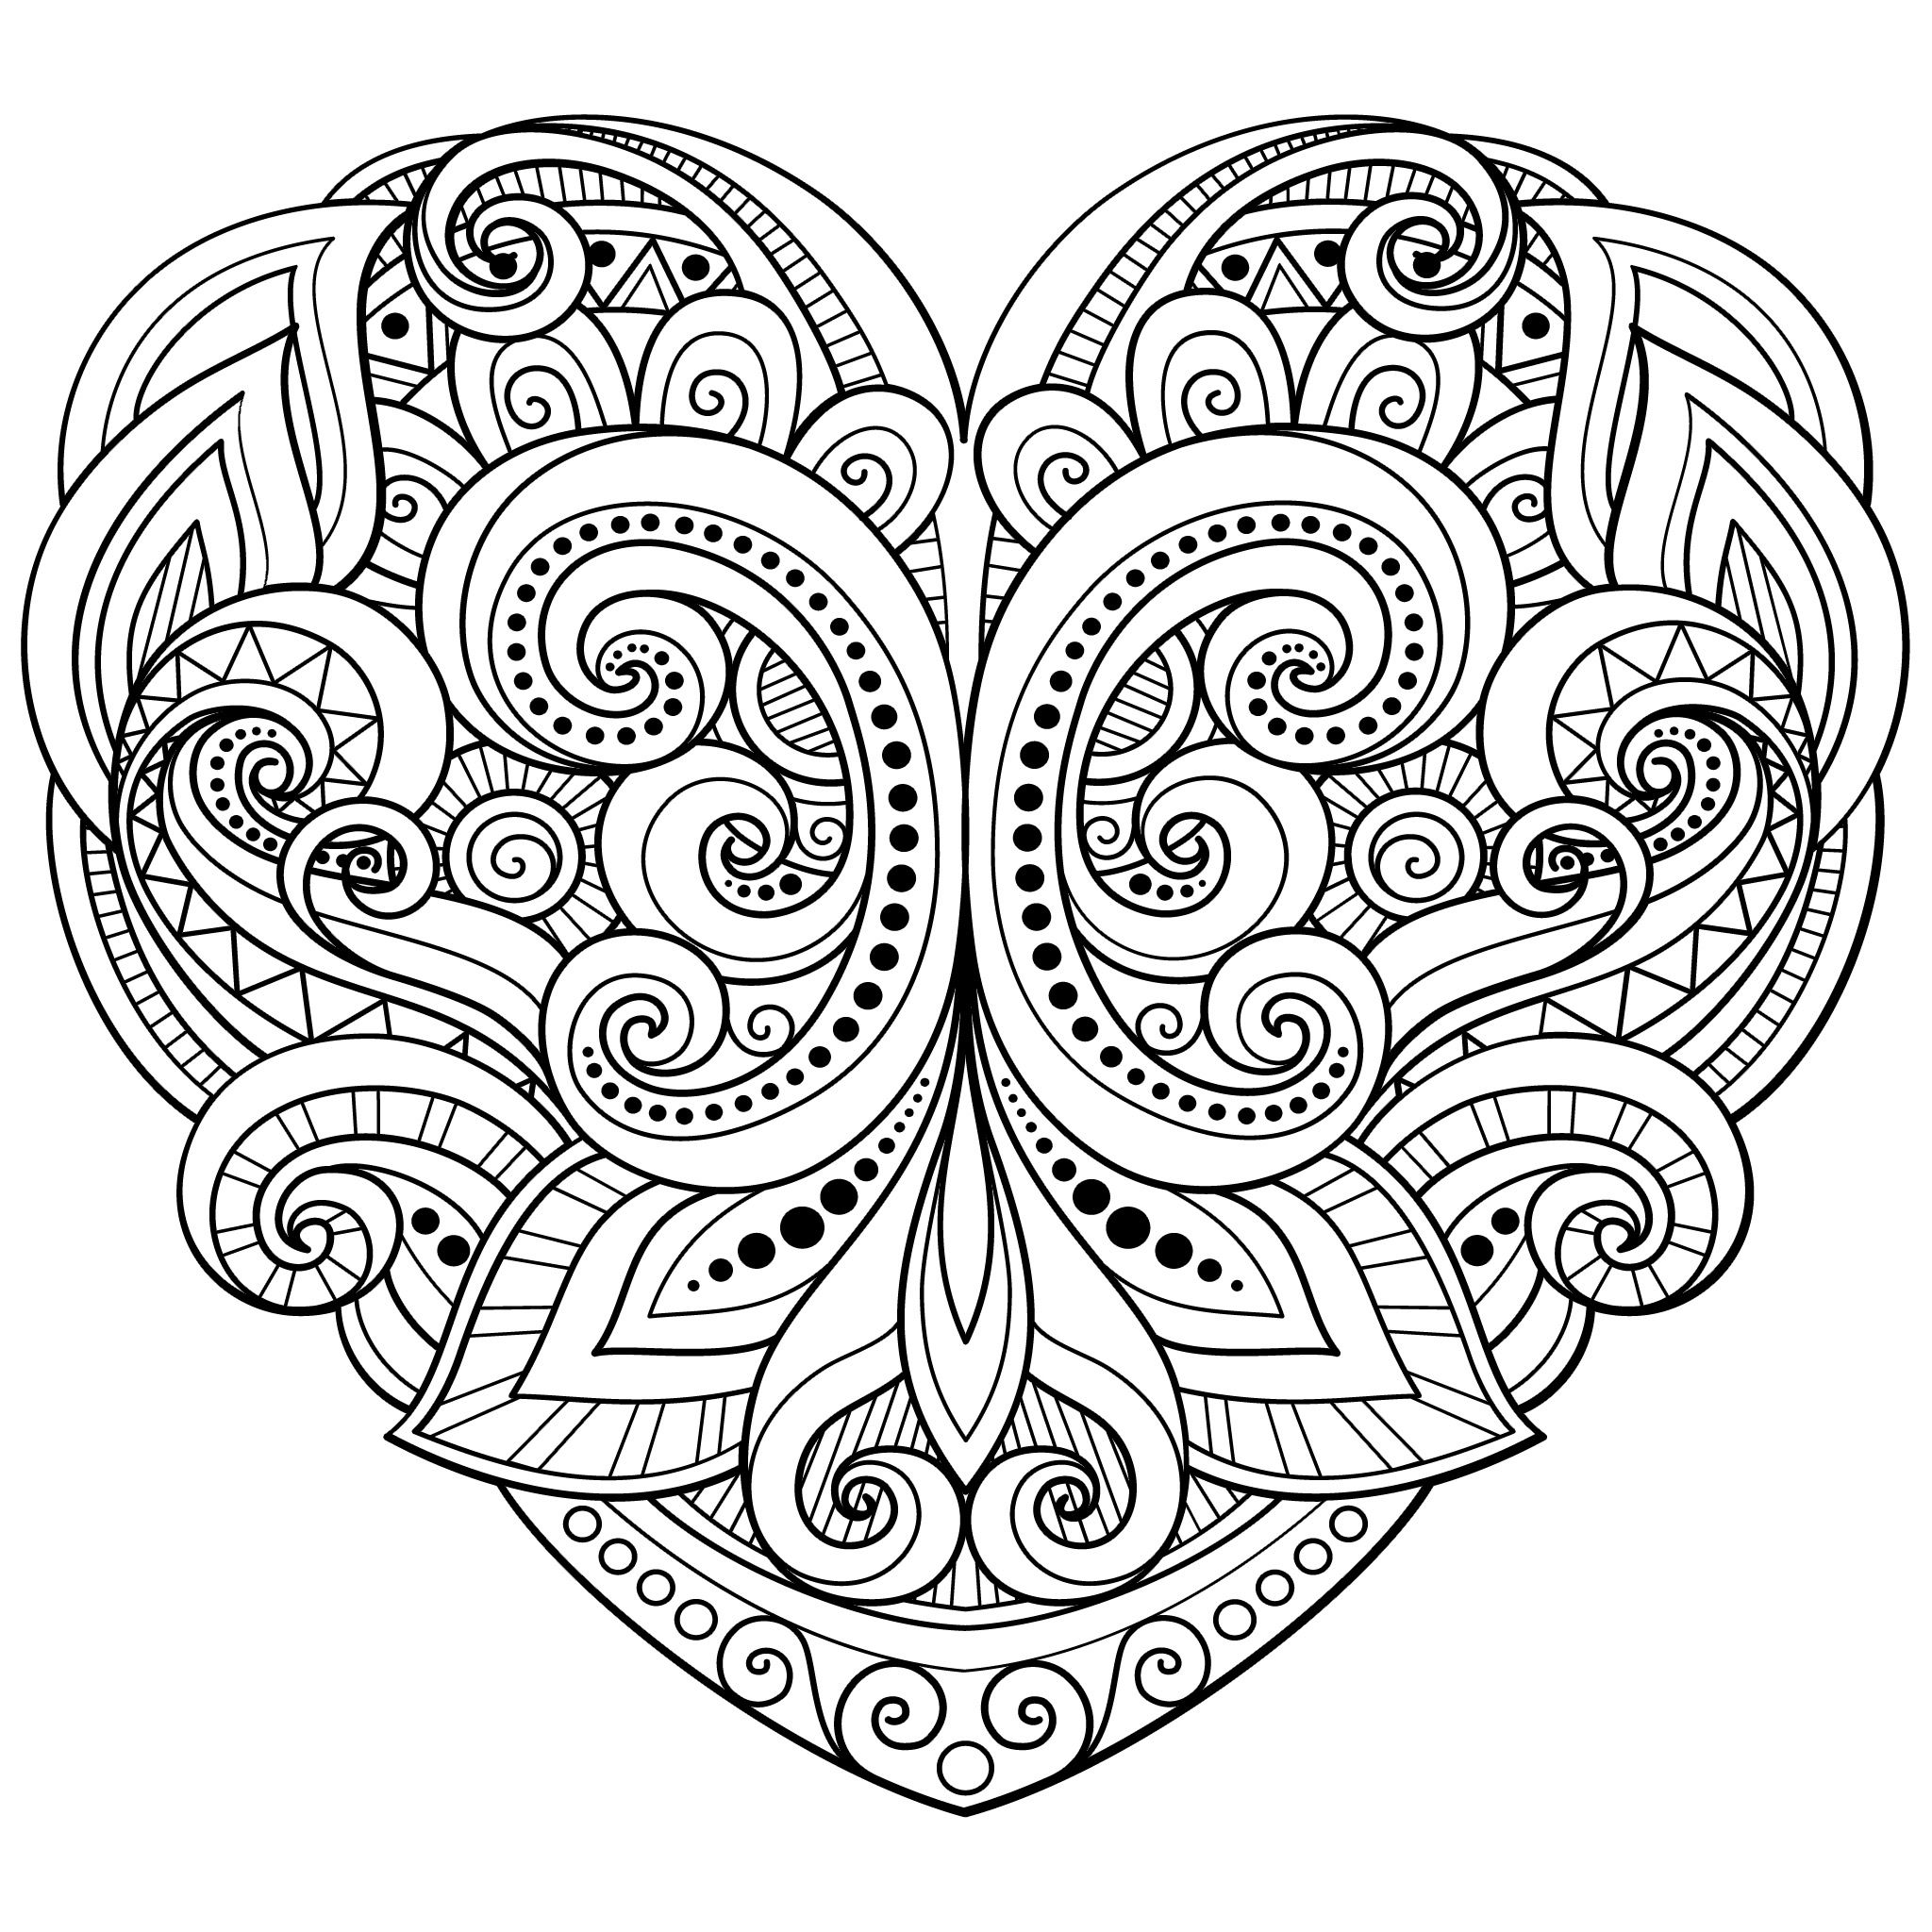 Hearts Coloring Pages For Adults Best Coloring Pages For Kids